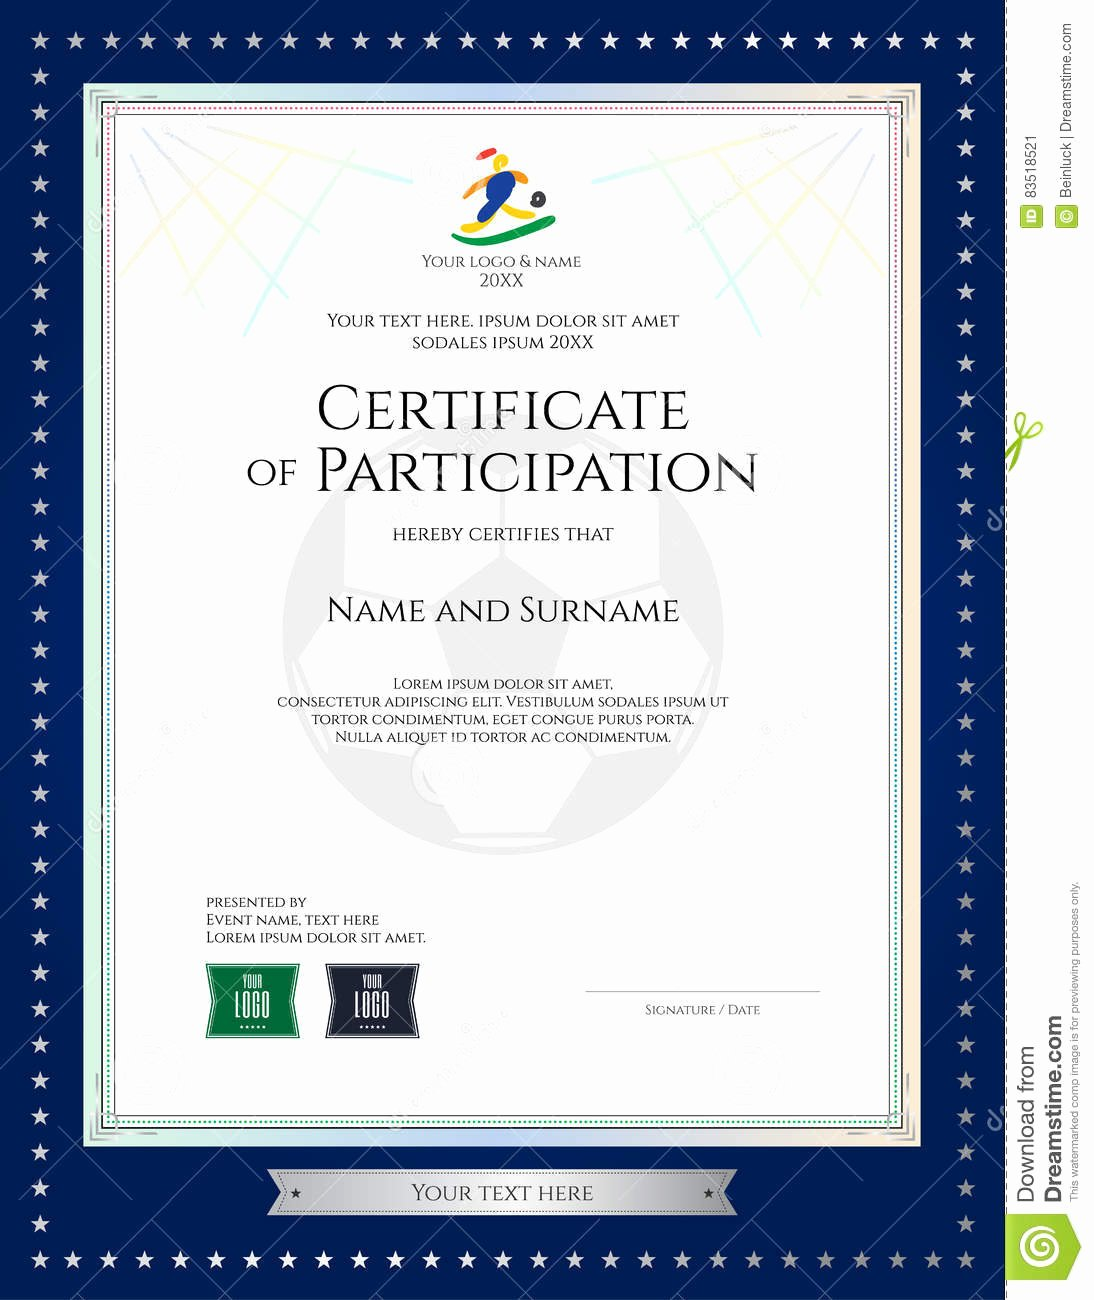 Dealer Participation Certification form Inspirational Certificate Participation Template In Sport theme